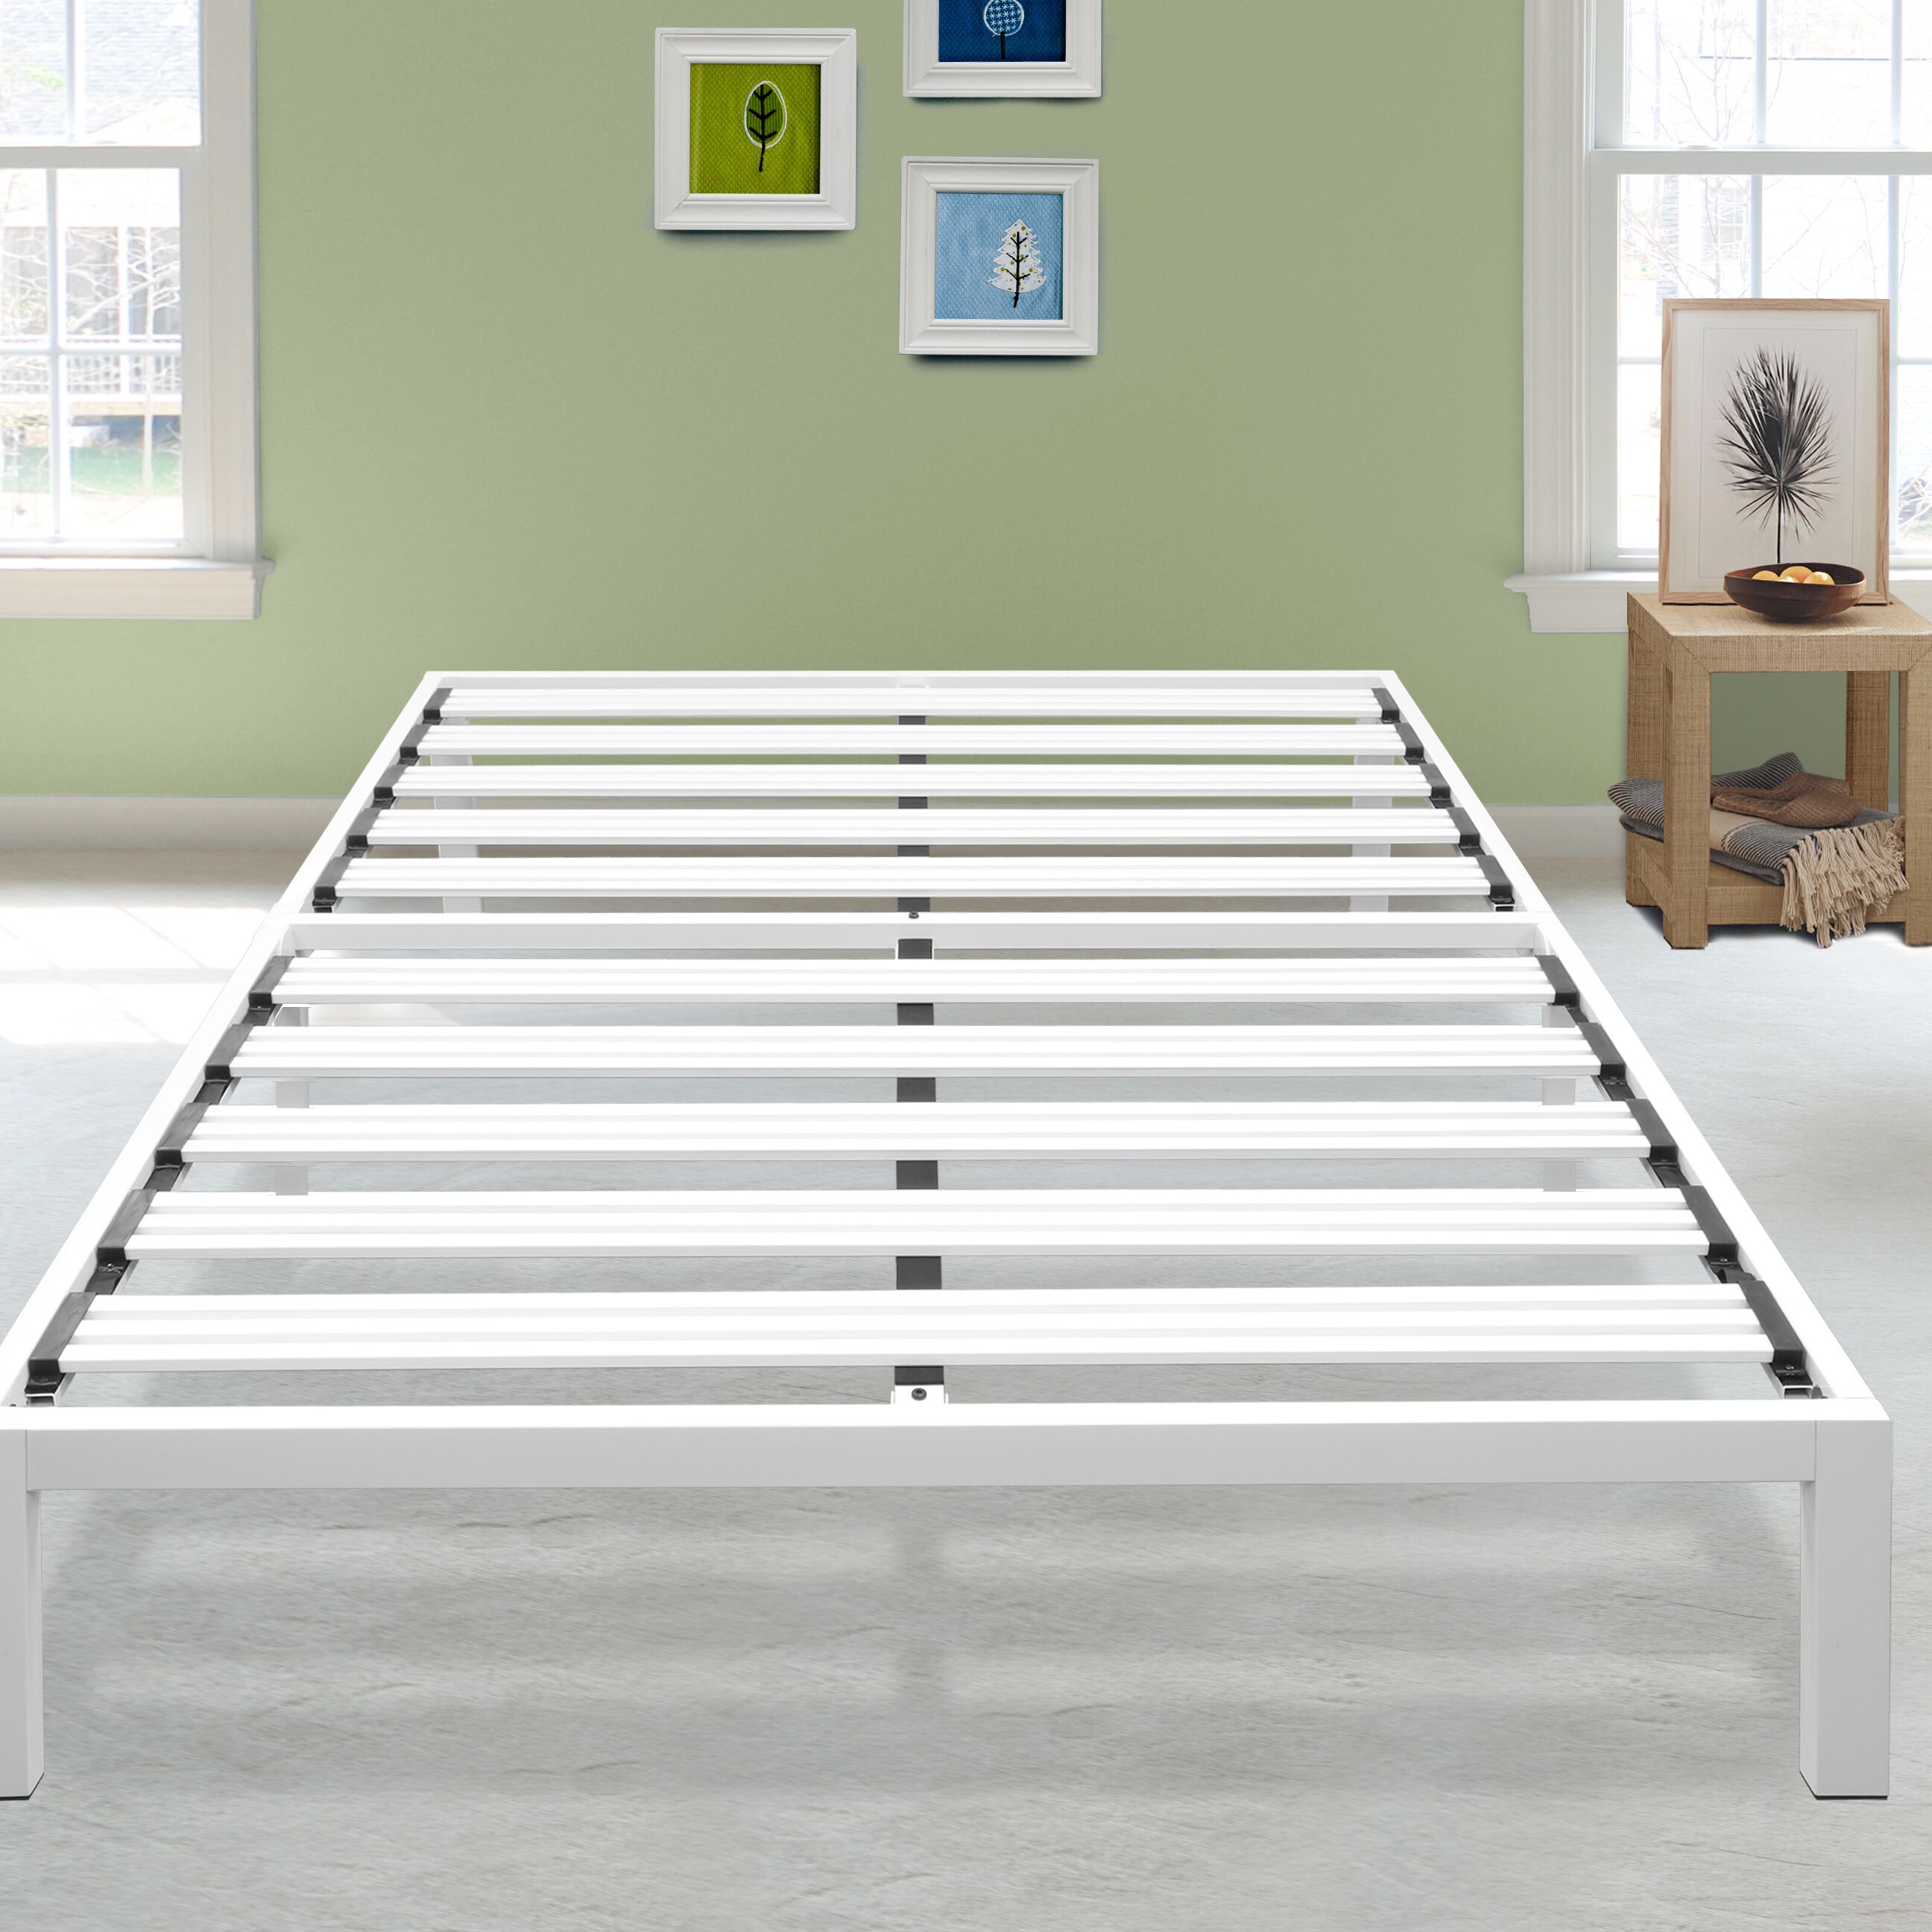 platform metal queen full black twin frame q products king duty size foundation heavy slat bed mattress